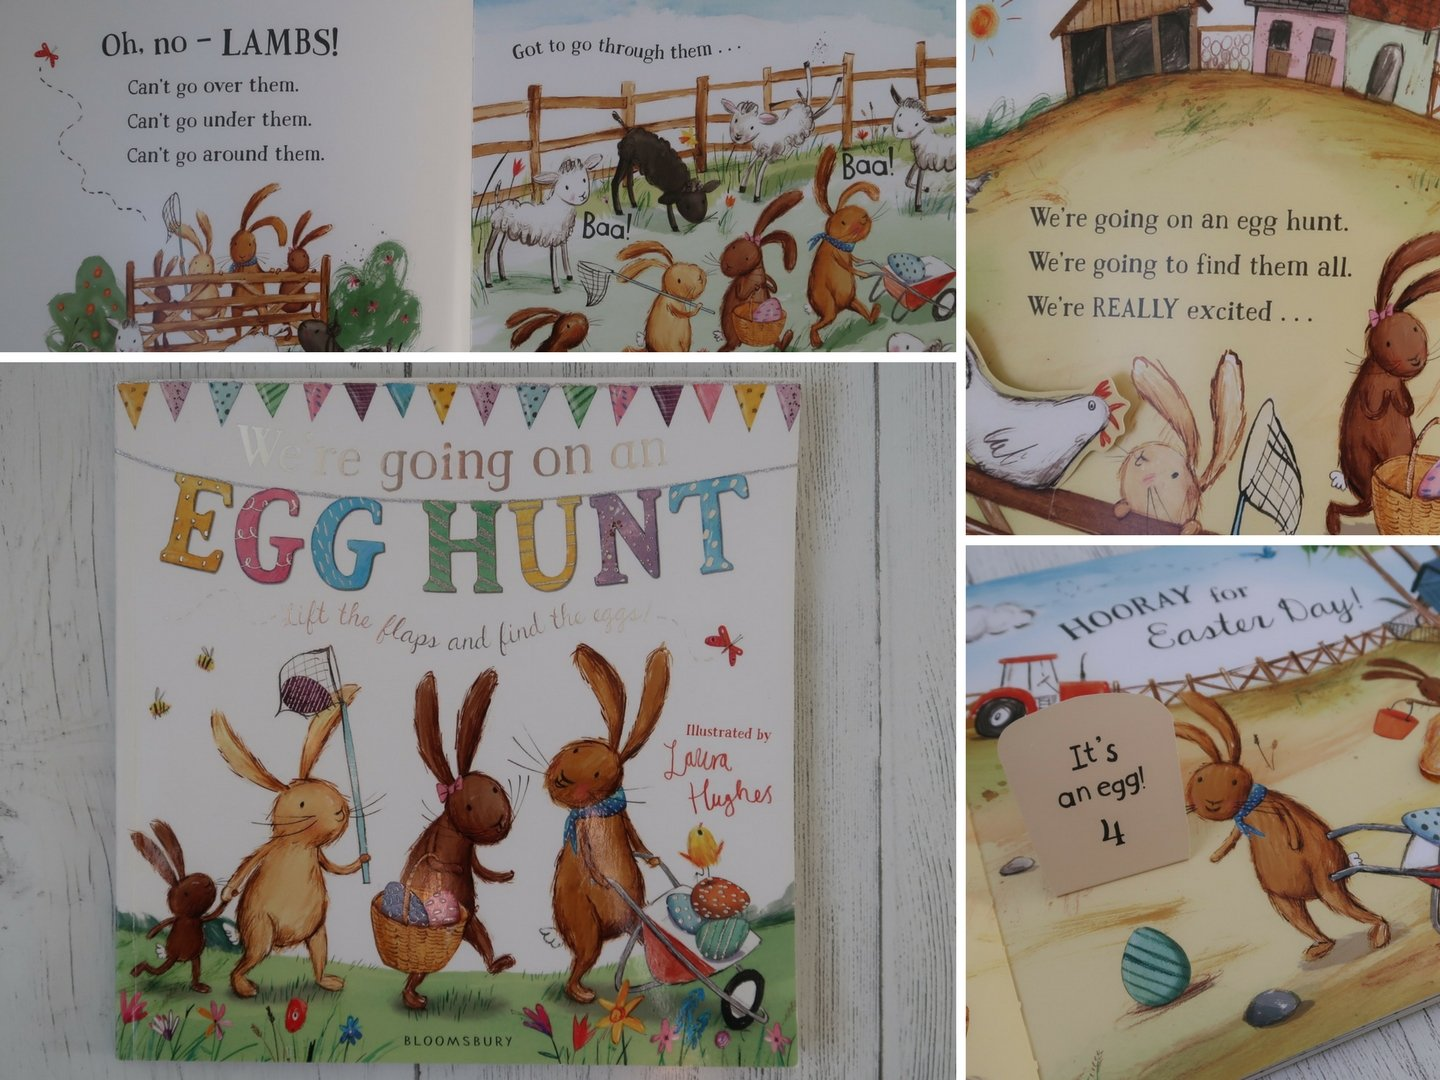 We're going on an Egg hunt Easter children's picture book.